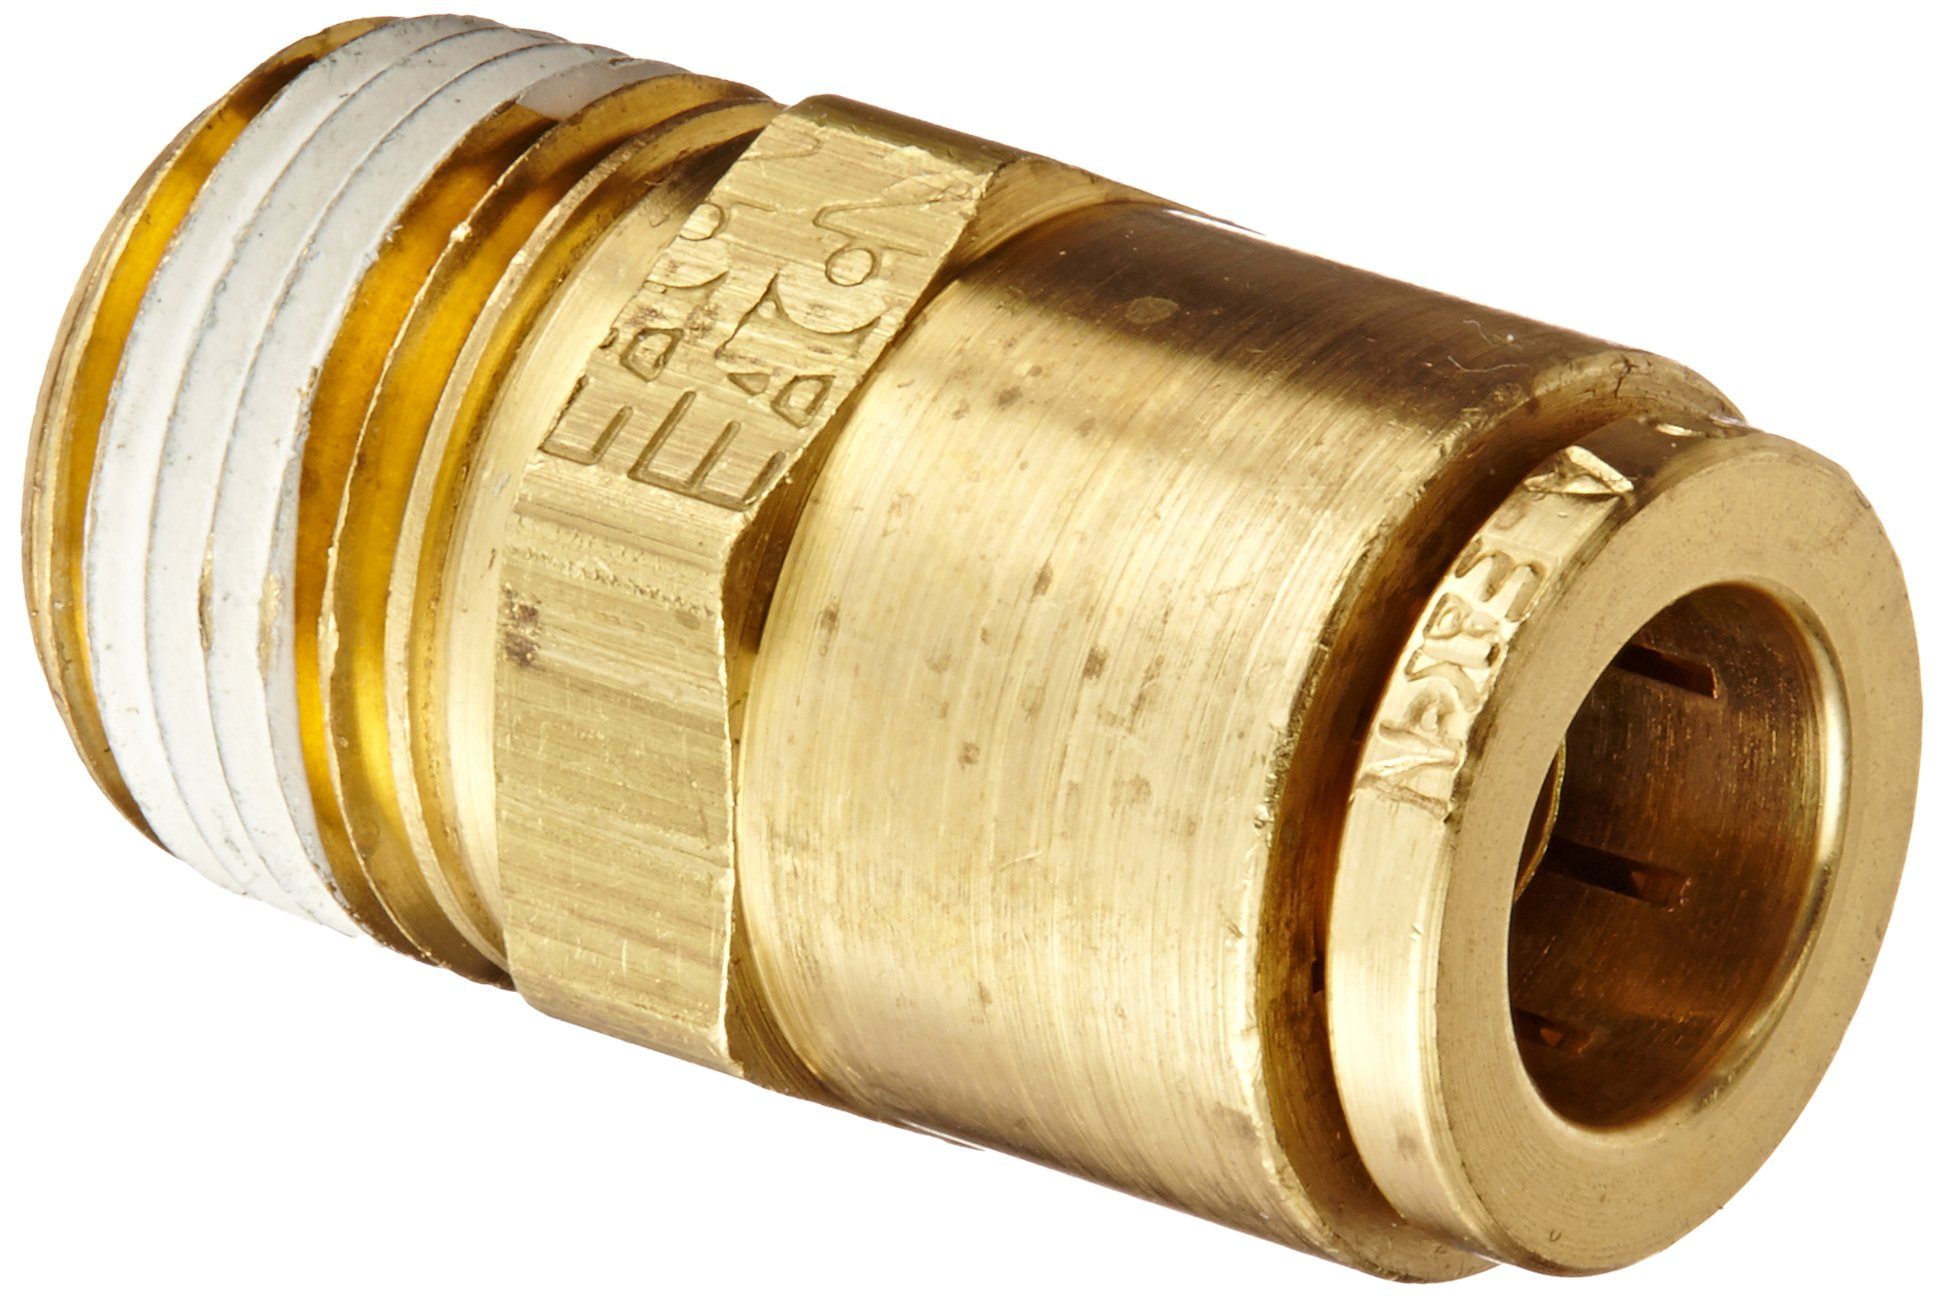 Eaton Weatherhead 1868X6X6 Brass CA360 D.O.T. Air Brake Tube Fitting, Male Connector, 3/8'' NPT Male x Tube OD